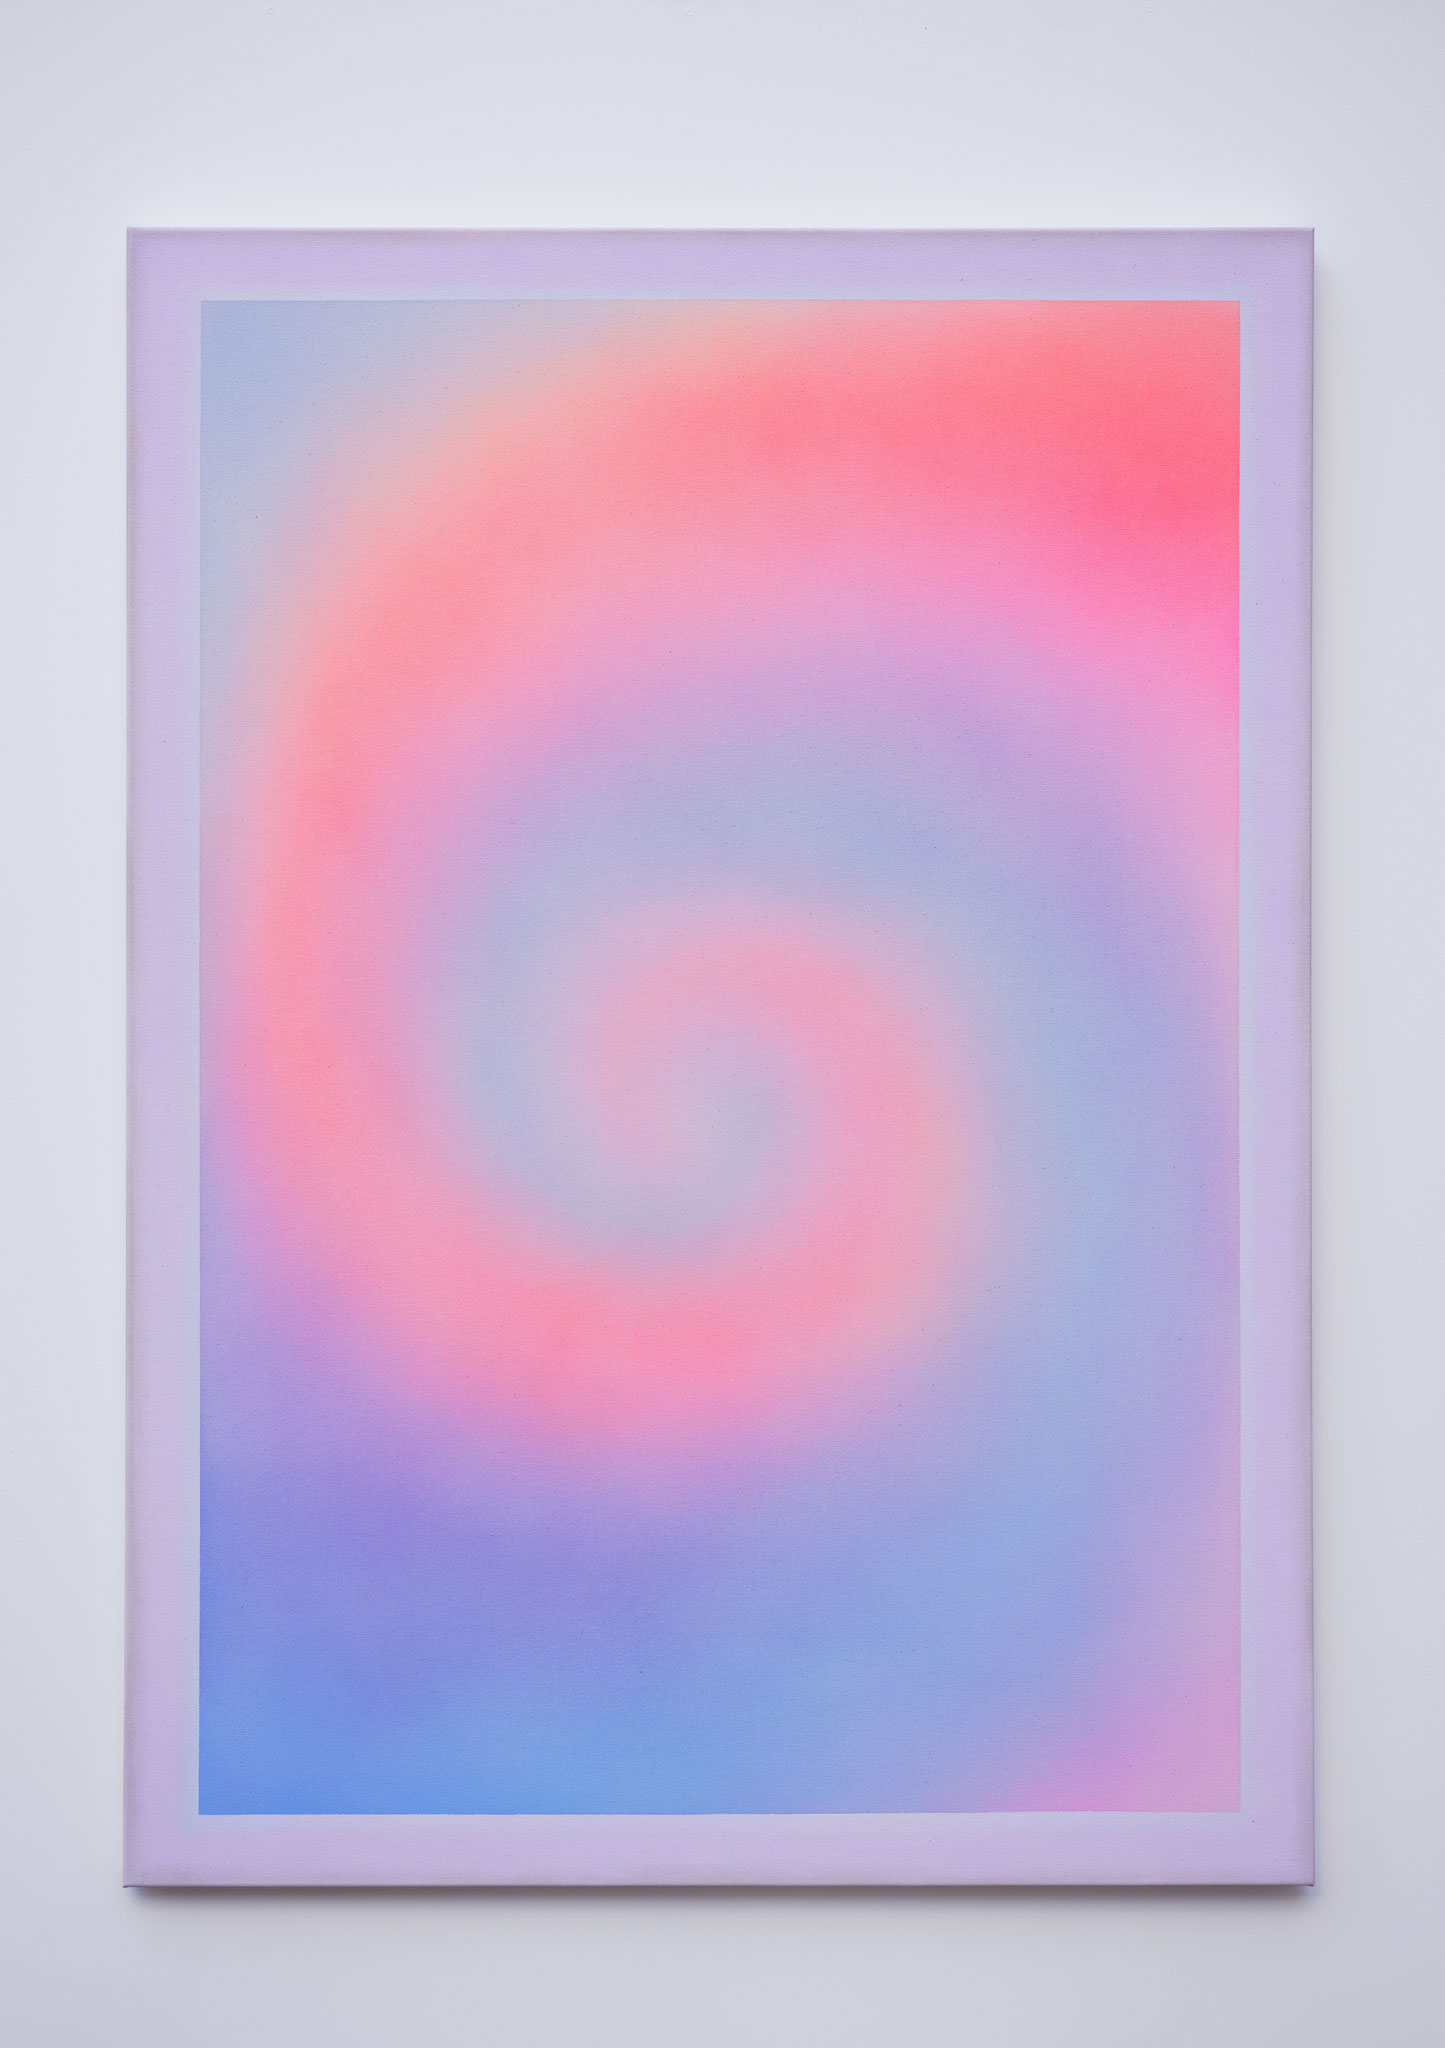 "Alina Birkner ""Untitled (We meet again)"" 2018, 170x120 cm, Acrylic on Canvas"